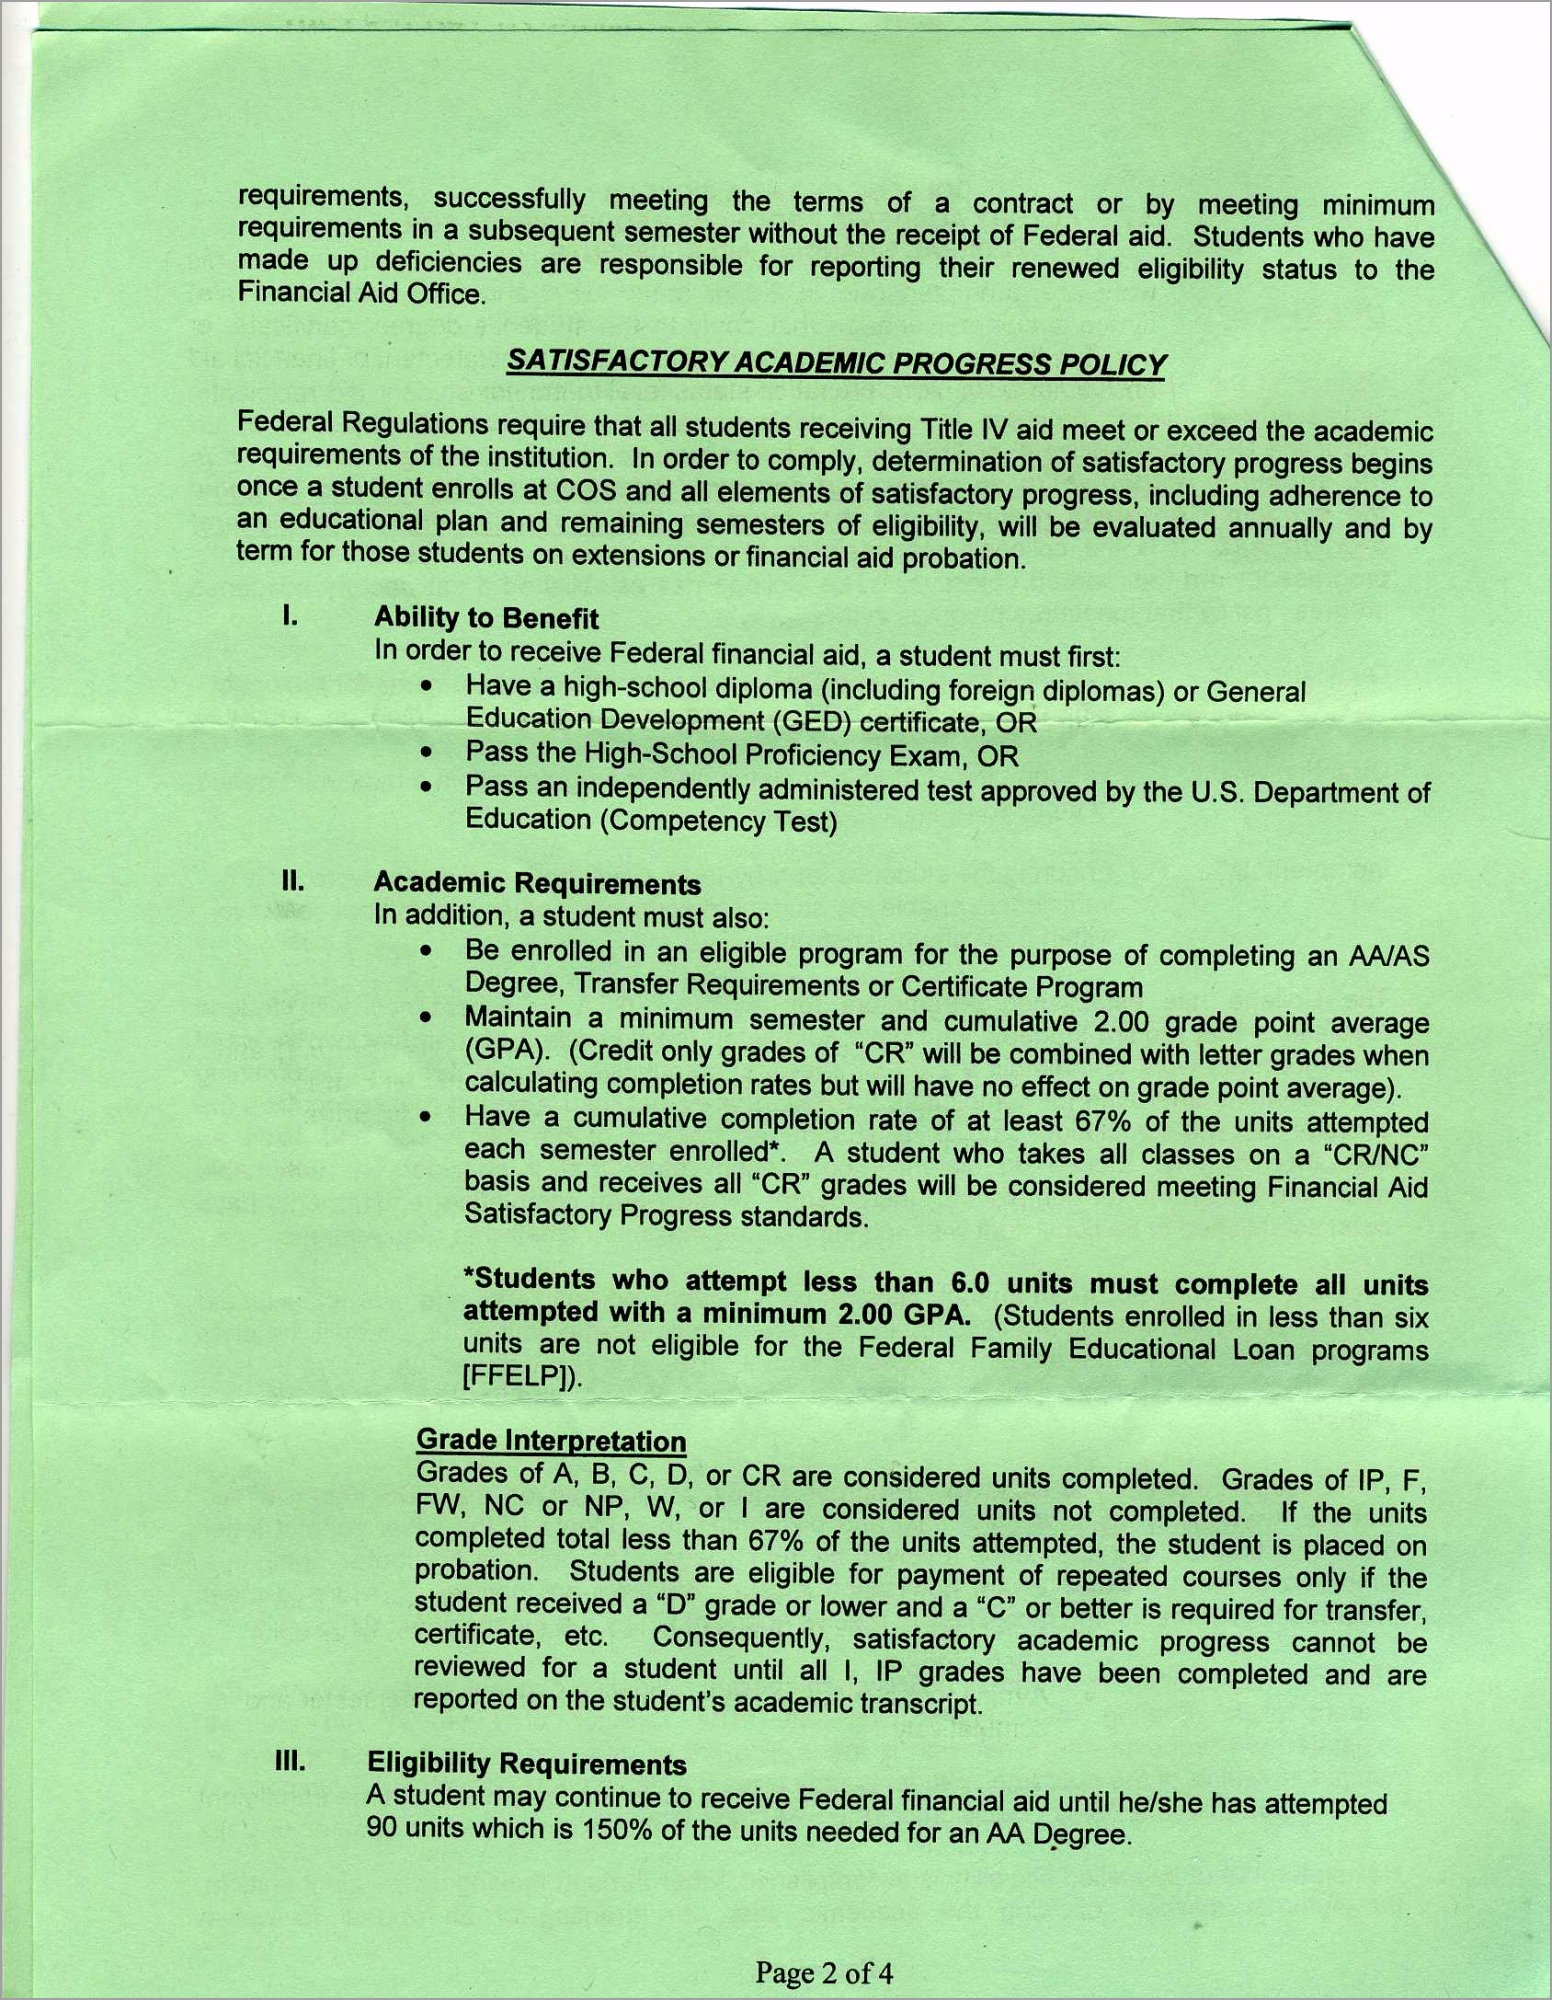 satisfactory academic progress requirements02 ipeaa